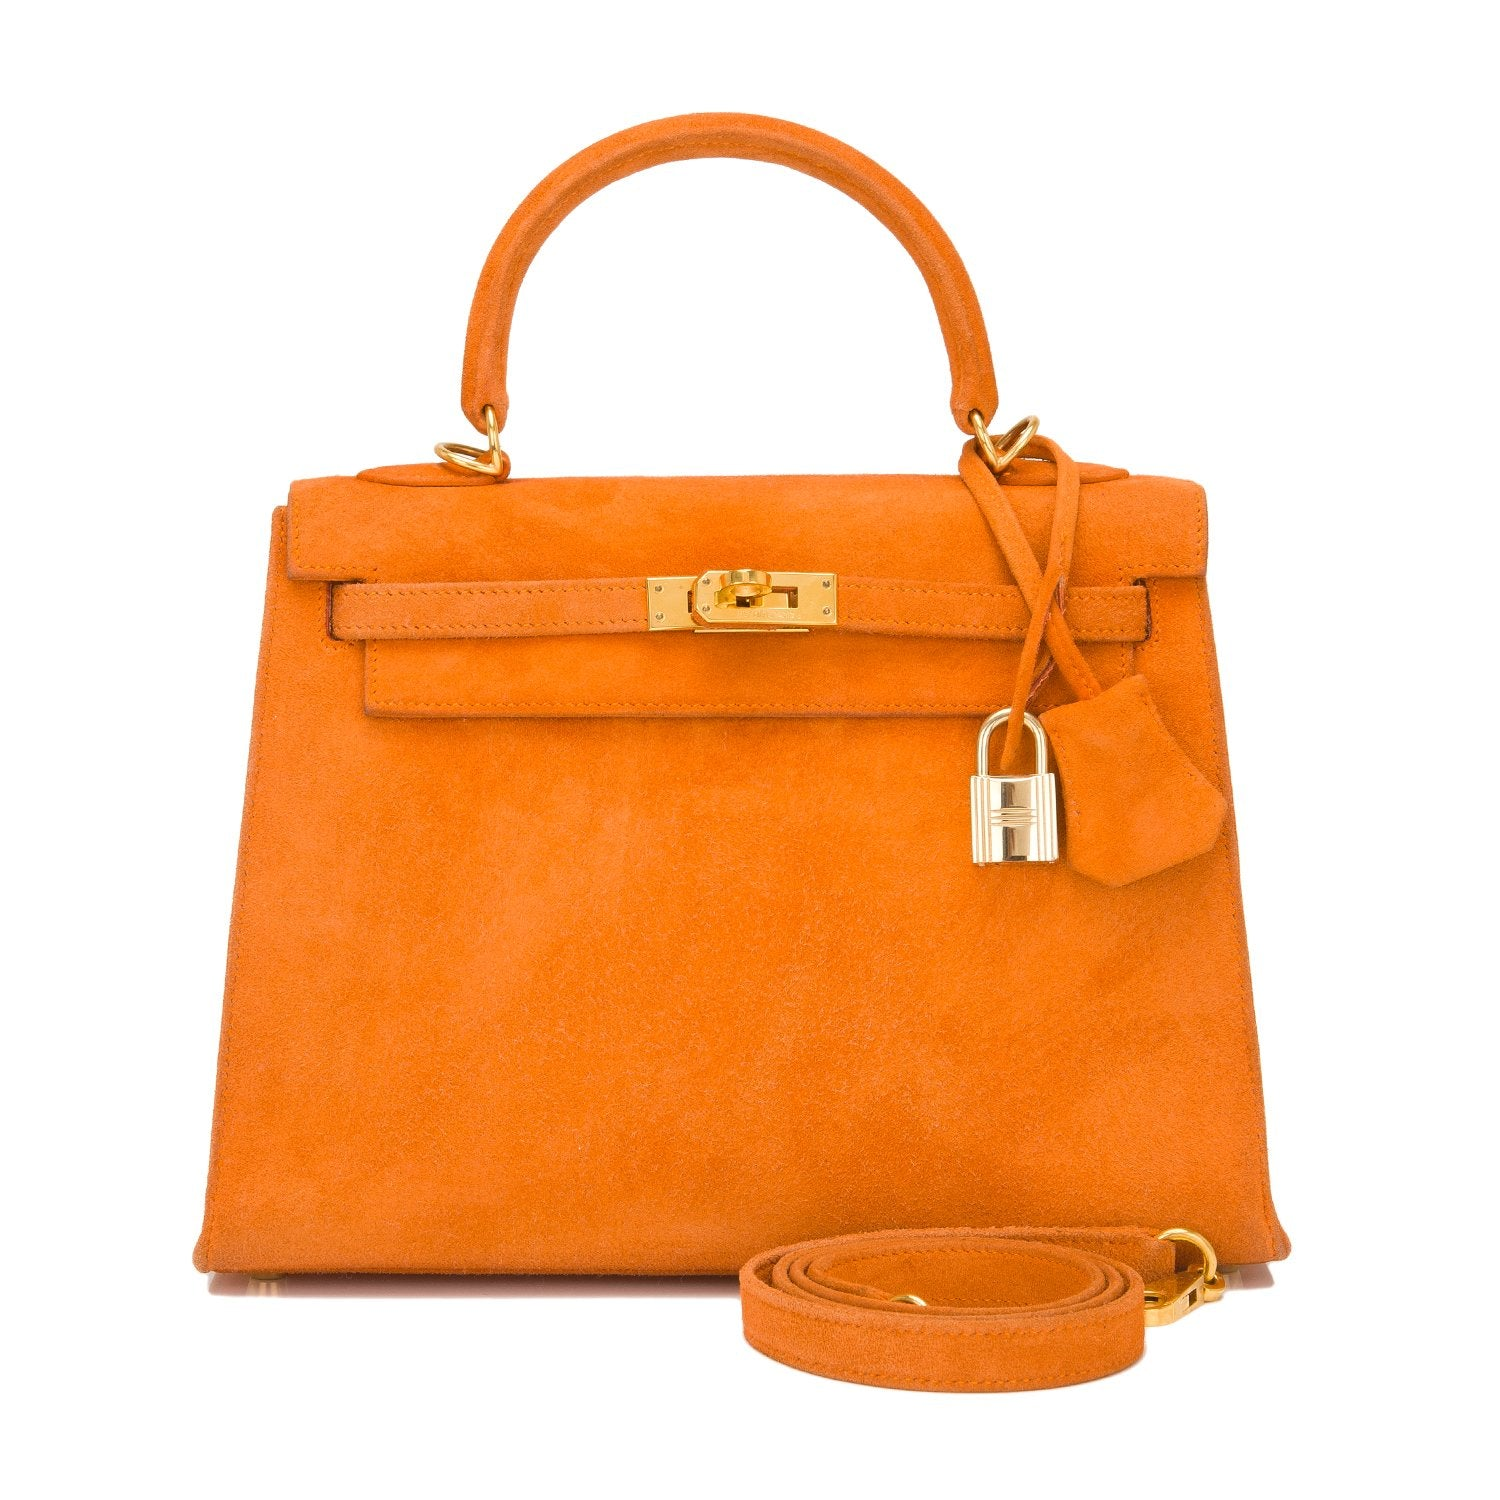 77f55fd5c2c69 ... greece hermes orange h doblis sellier kelly 25cm gold hardware preloved  excellent a806b 95007